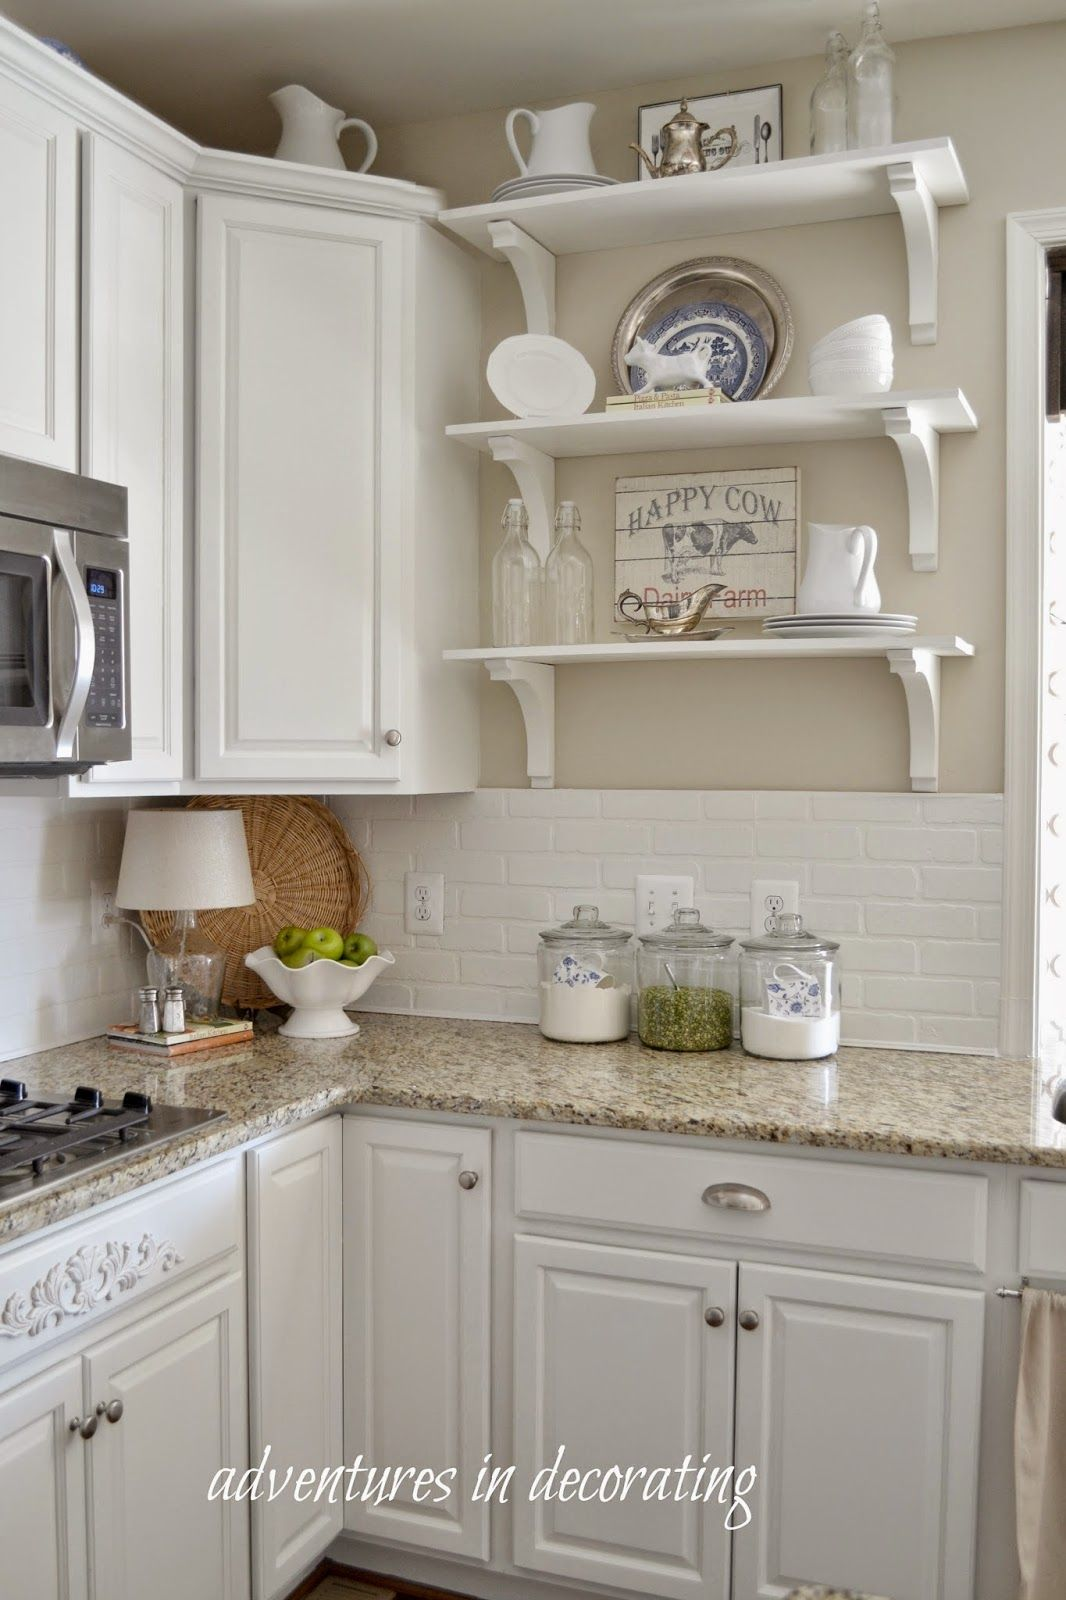 Adventures In Decorating More Changes In Our Kitchen Top Bloggers T